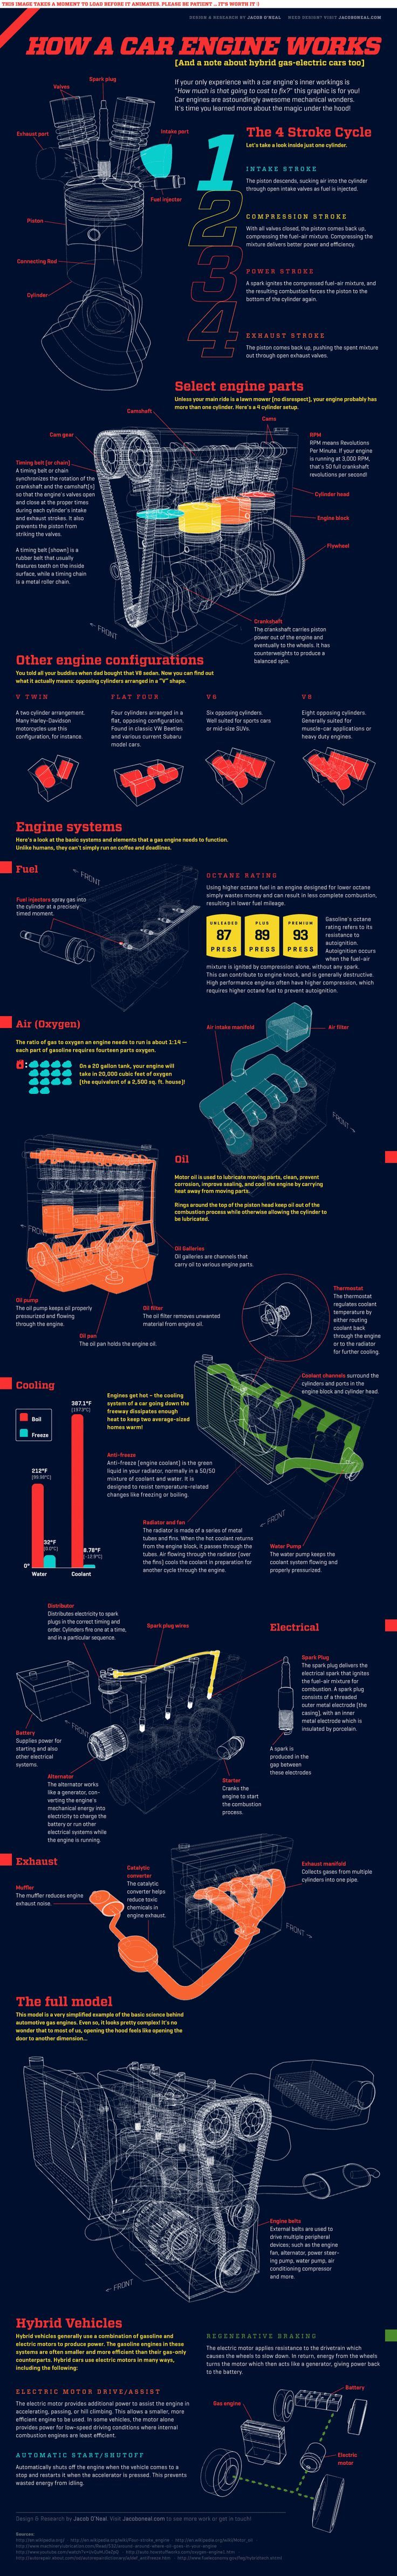 How A Car Engine Works: Infographic #carengine #forgedparts   Visit dfprecision.com for OE + Aftermarket Metal Engine Parts